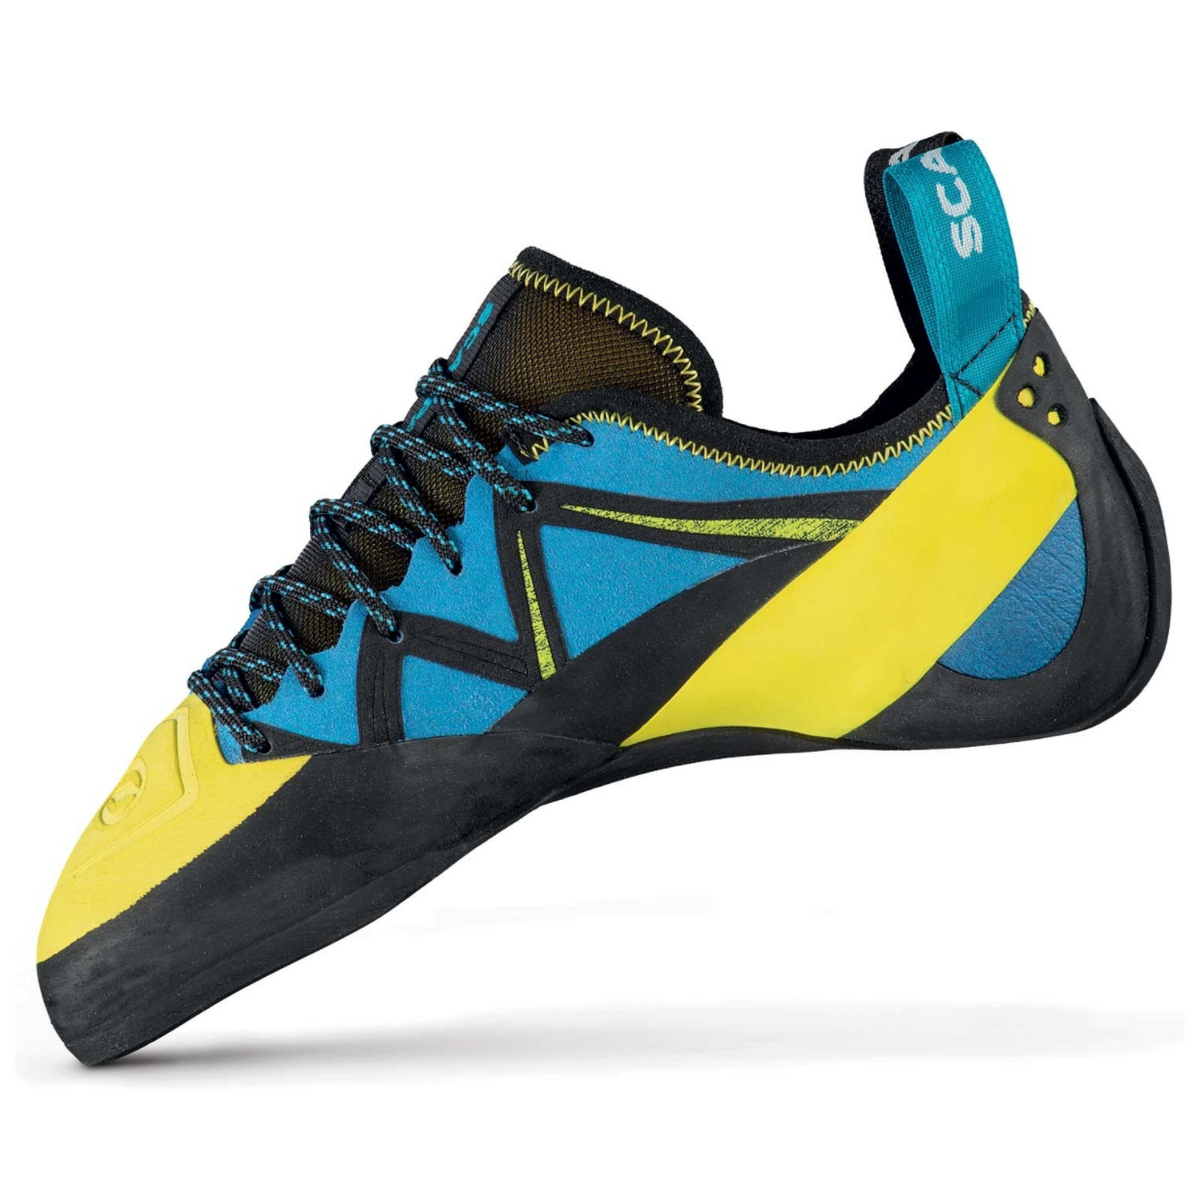 Scarpa Vapour Lace climbing shoe in blue and yellow inside view